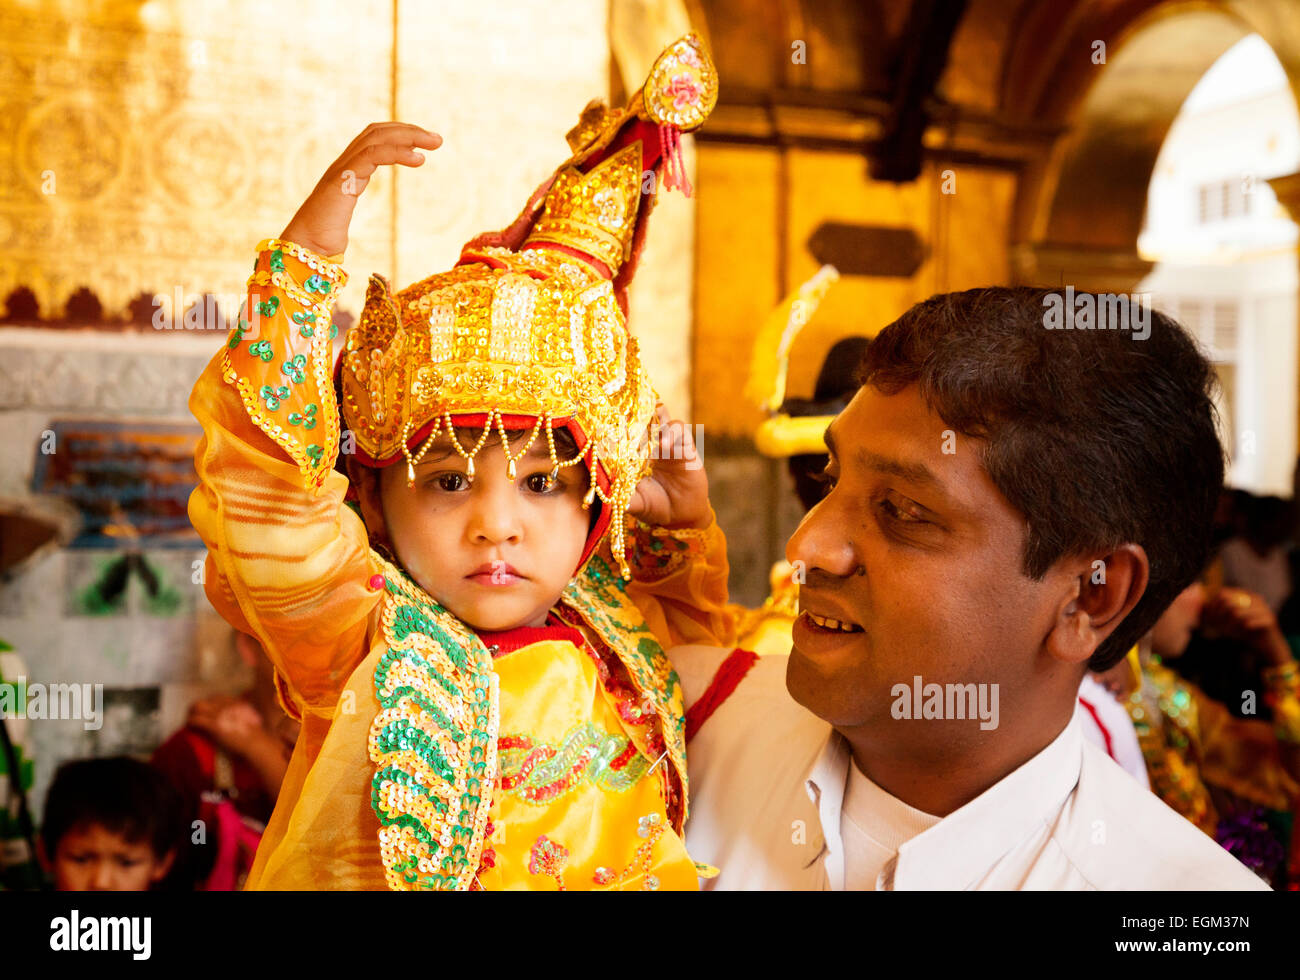 a-father-and-his-child-in-ceremonial-dress-mandalay-myanmar-burma-EGM37N.jpg